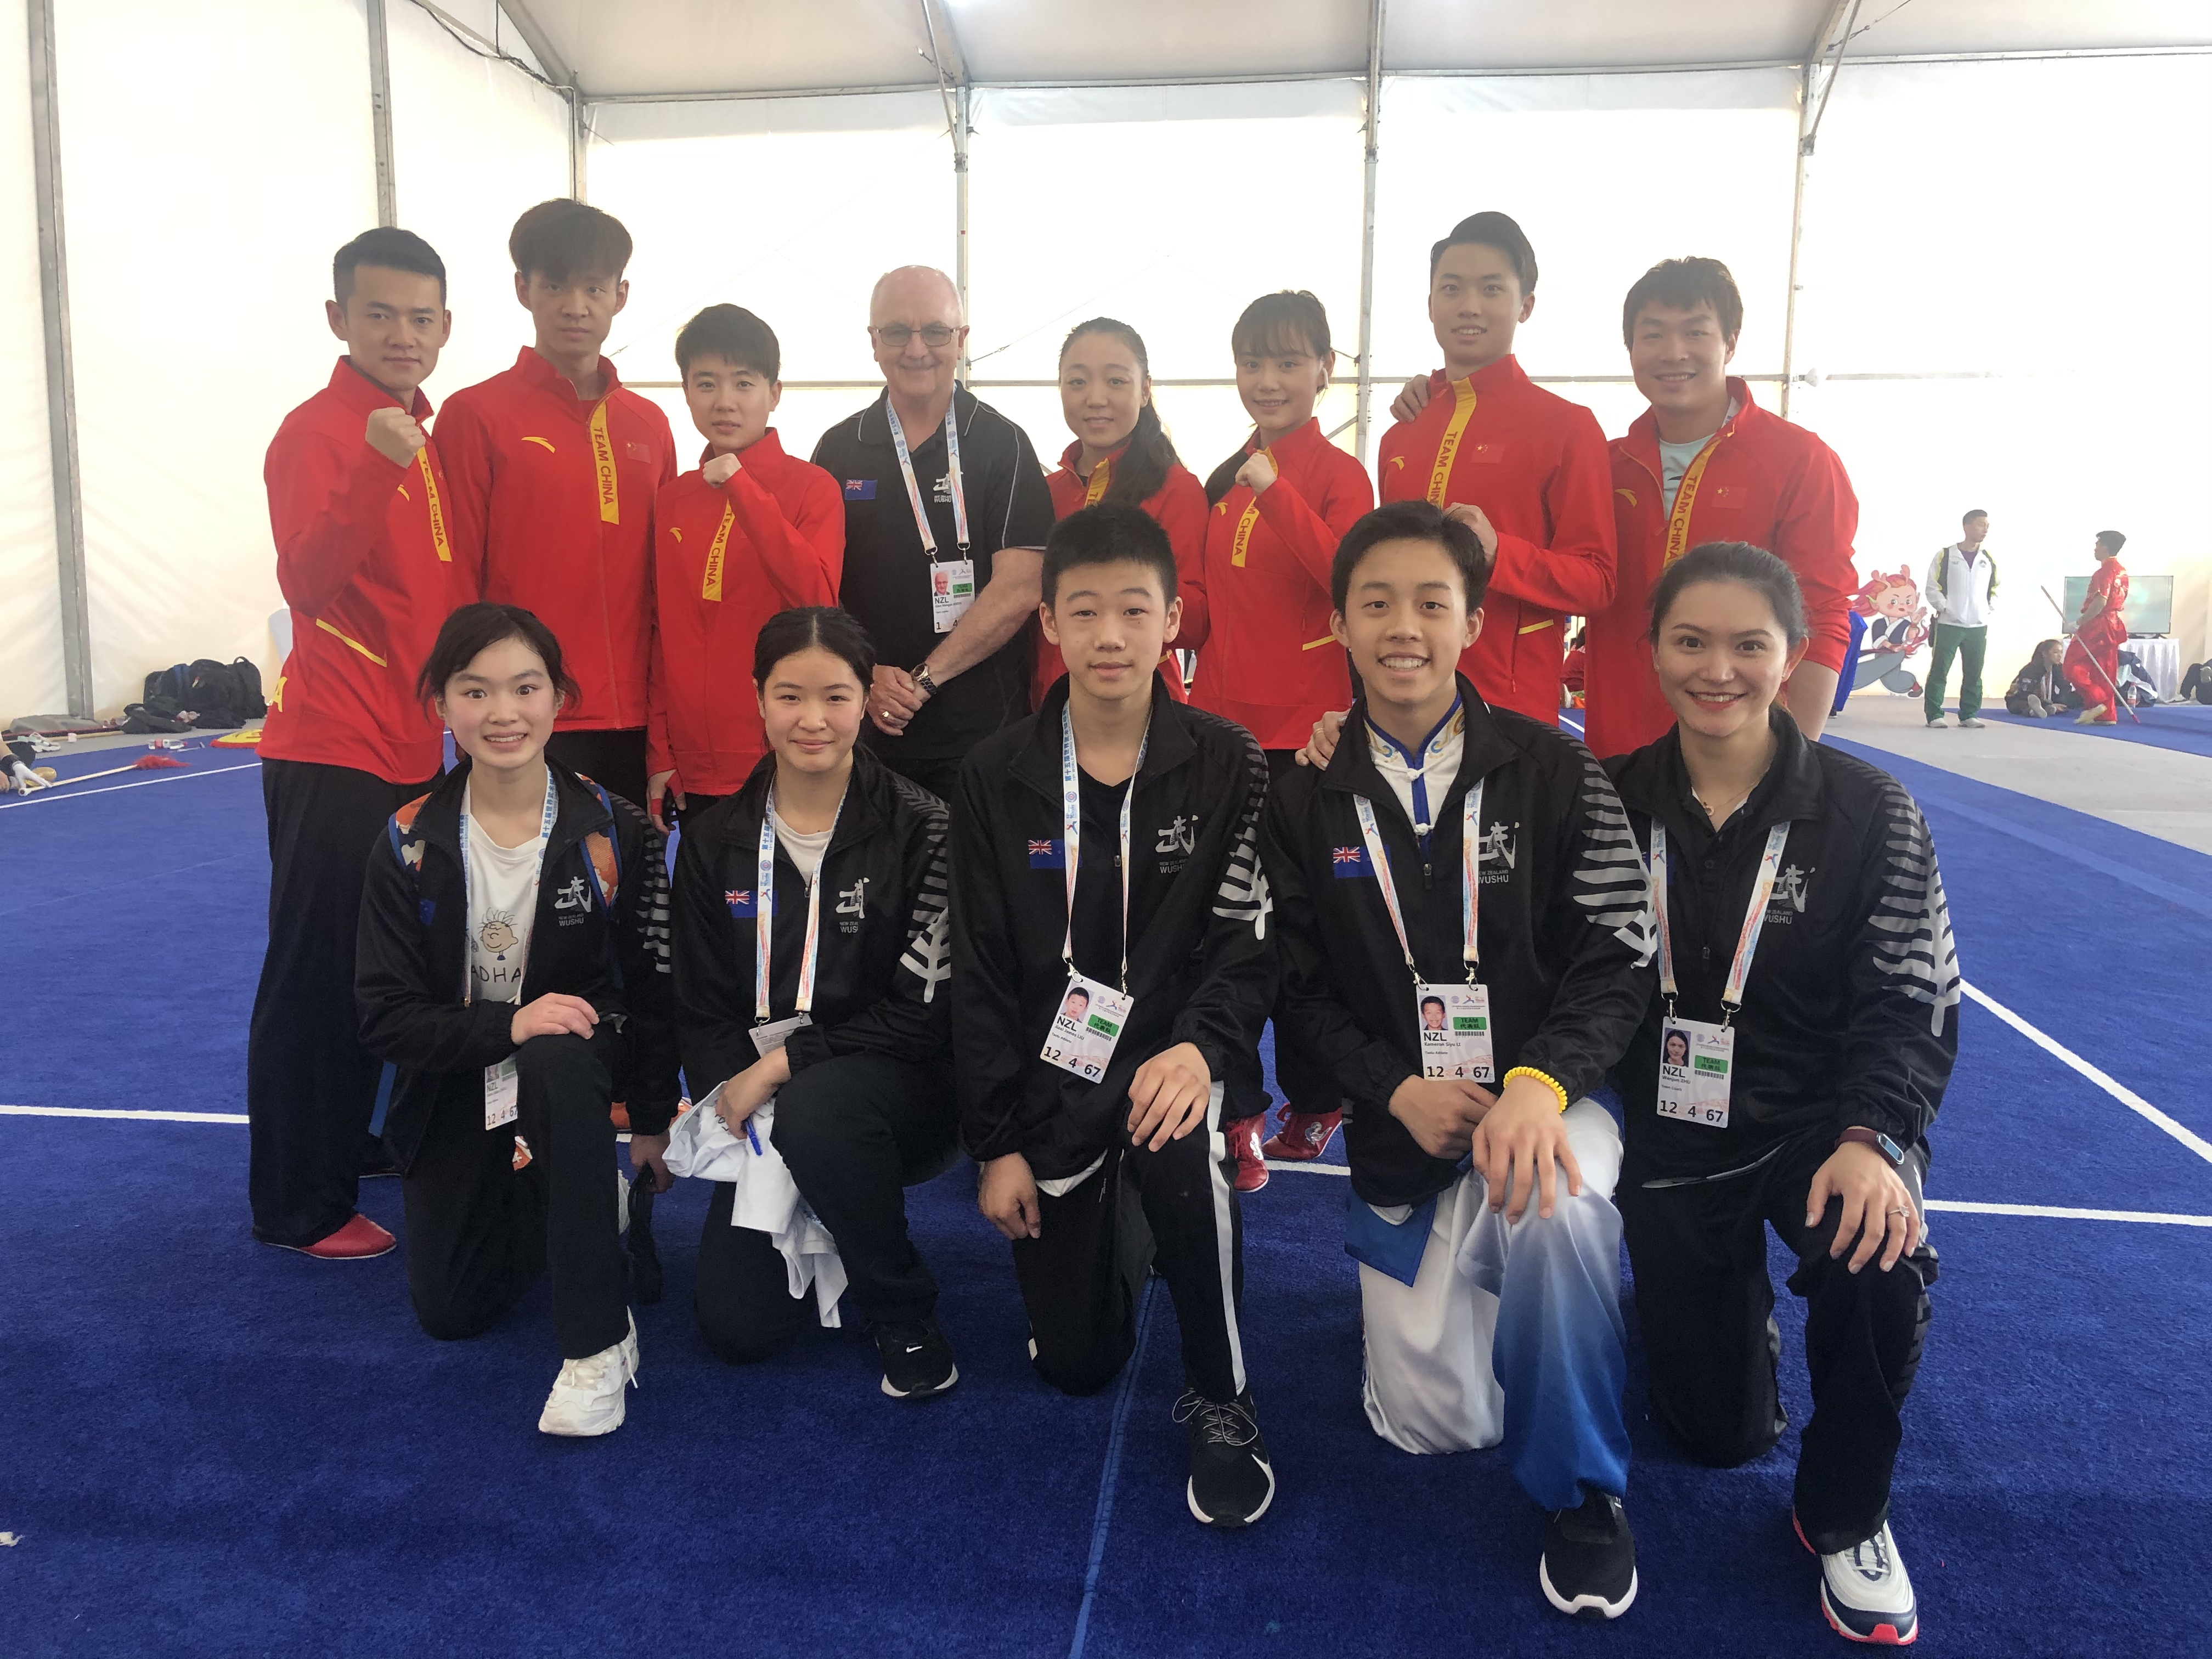 NZL Team Photo with the China Team